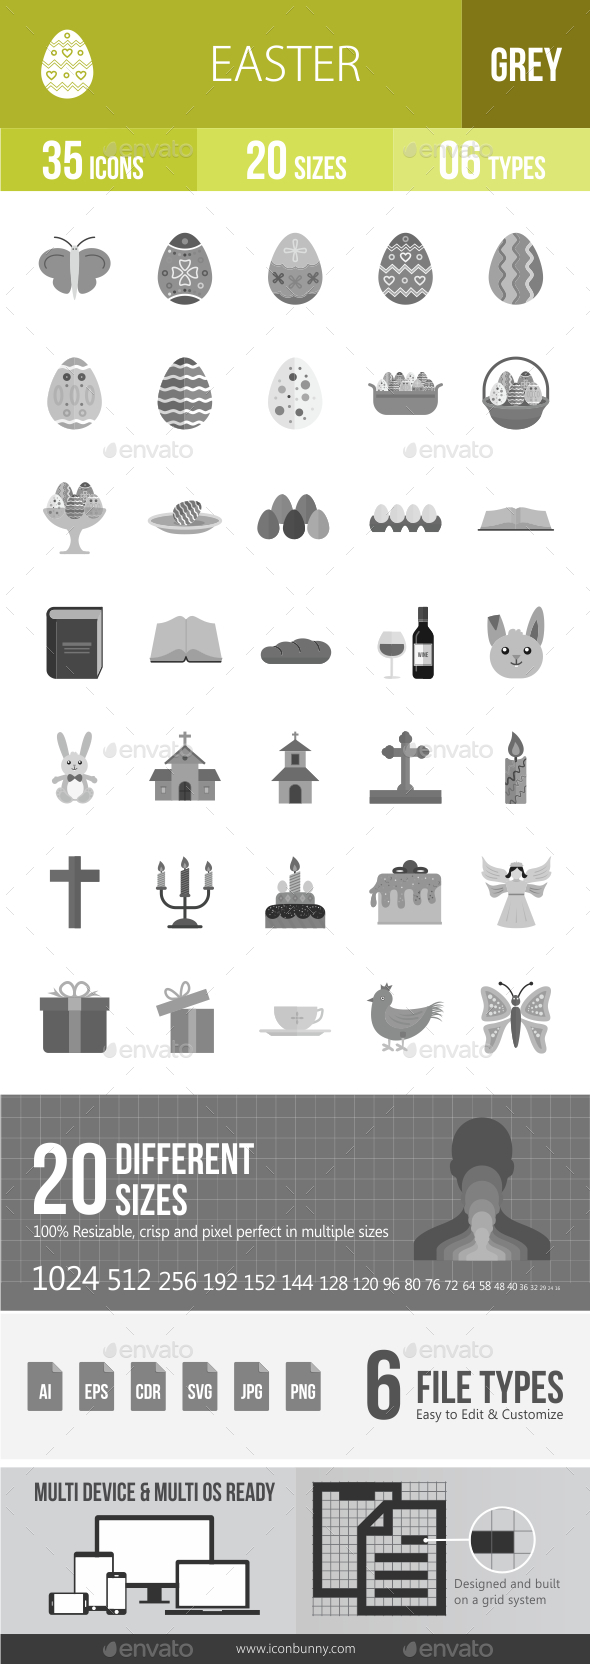 35 Easter Grey Scale Icons - Icons